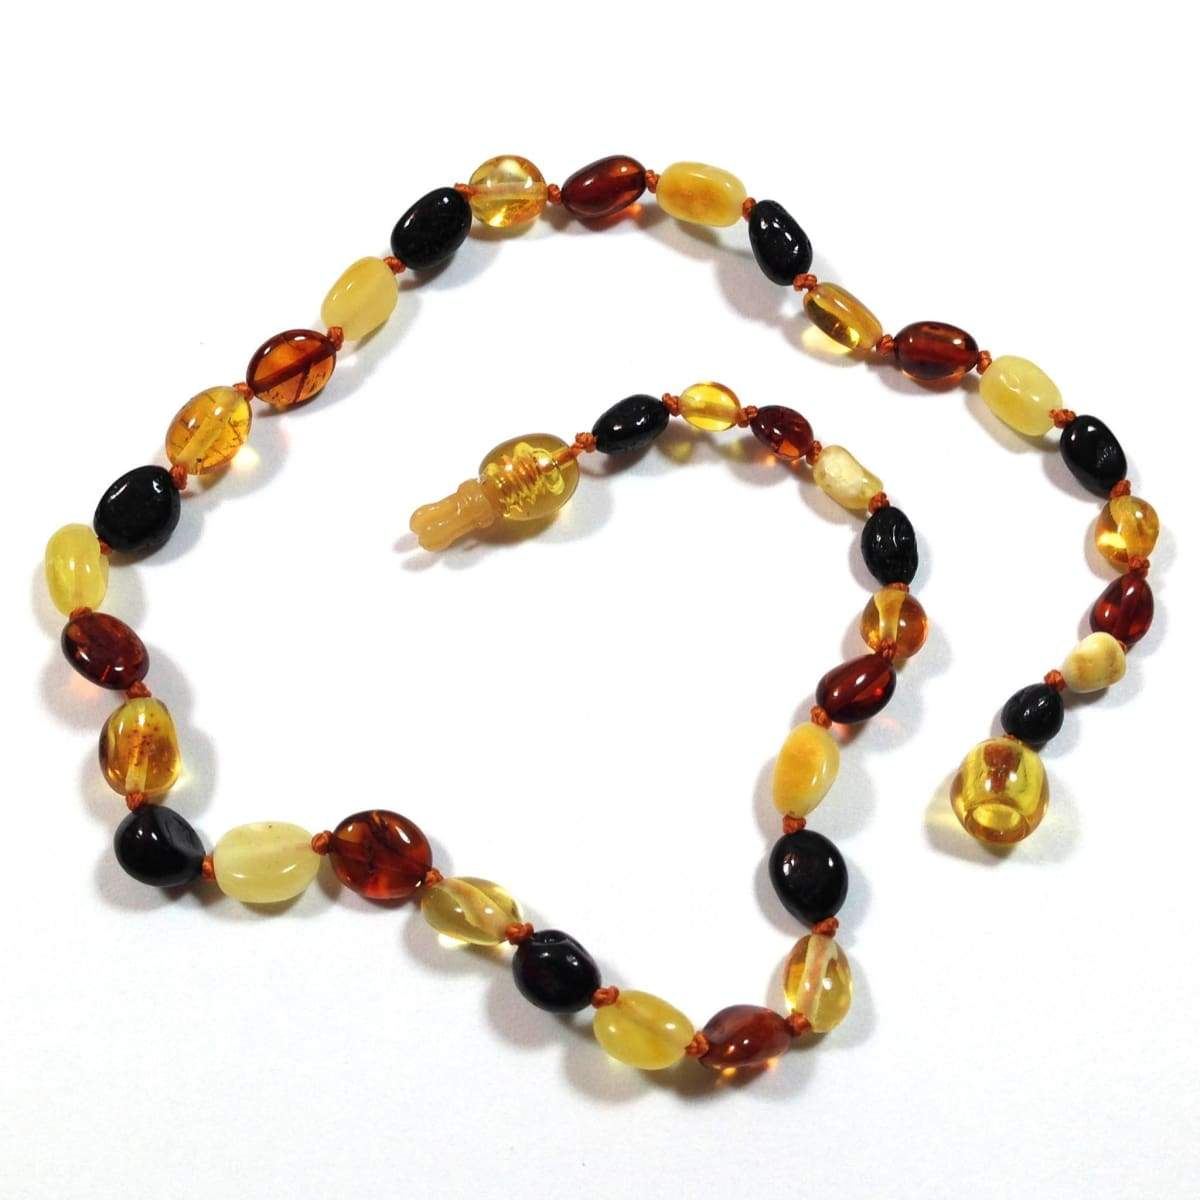 Baltic Amber Multicolored Bean - 12 Necklace - Pop Clasp - Baltic Amber Jewelry